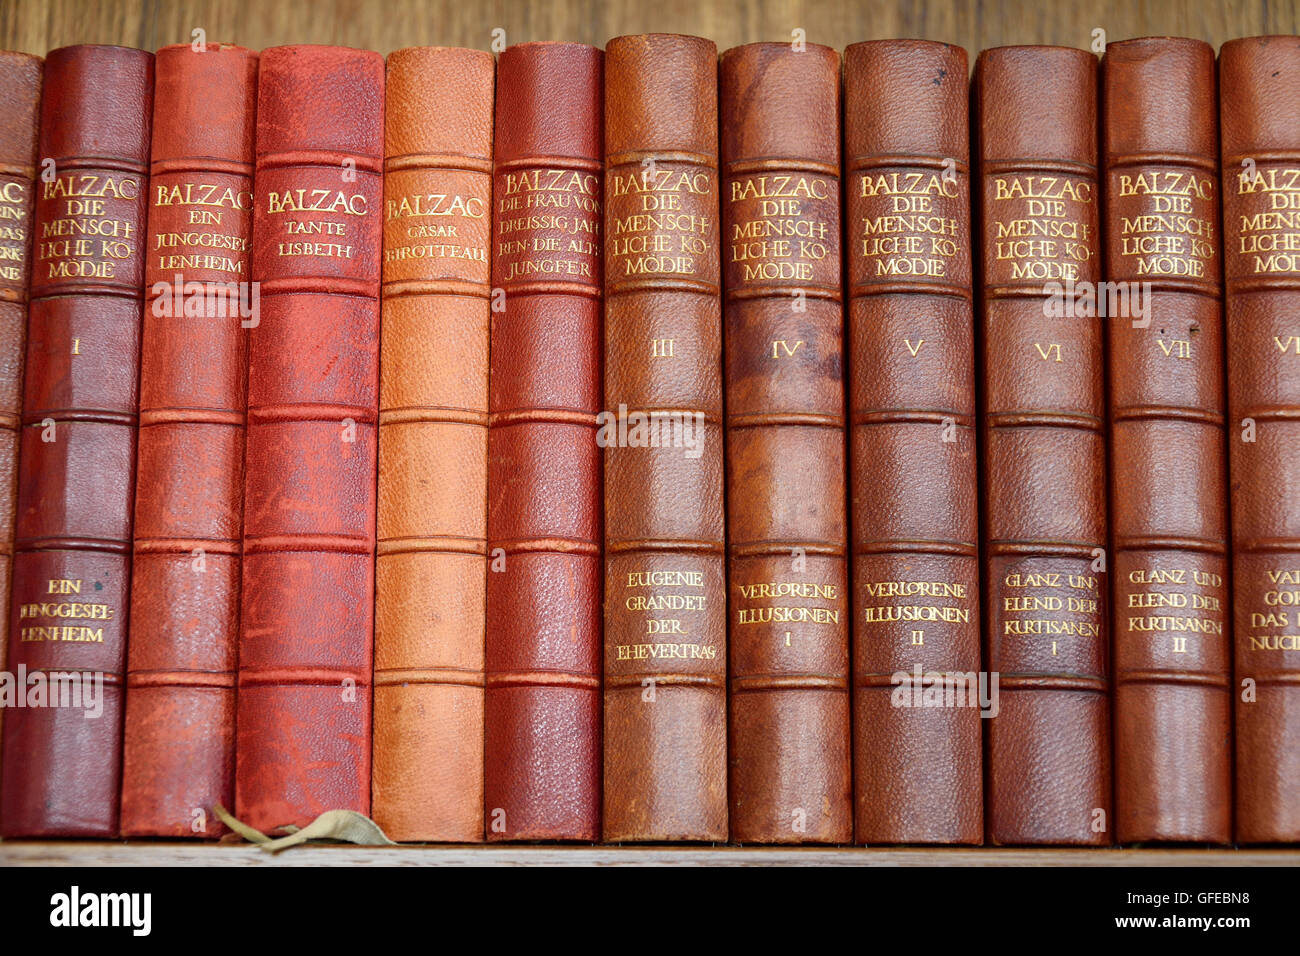 Collection Of Balzacs Old Books In German Language On A Bookshelf